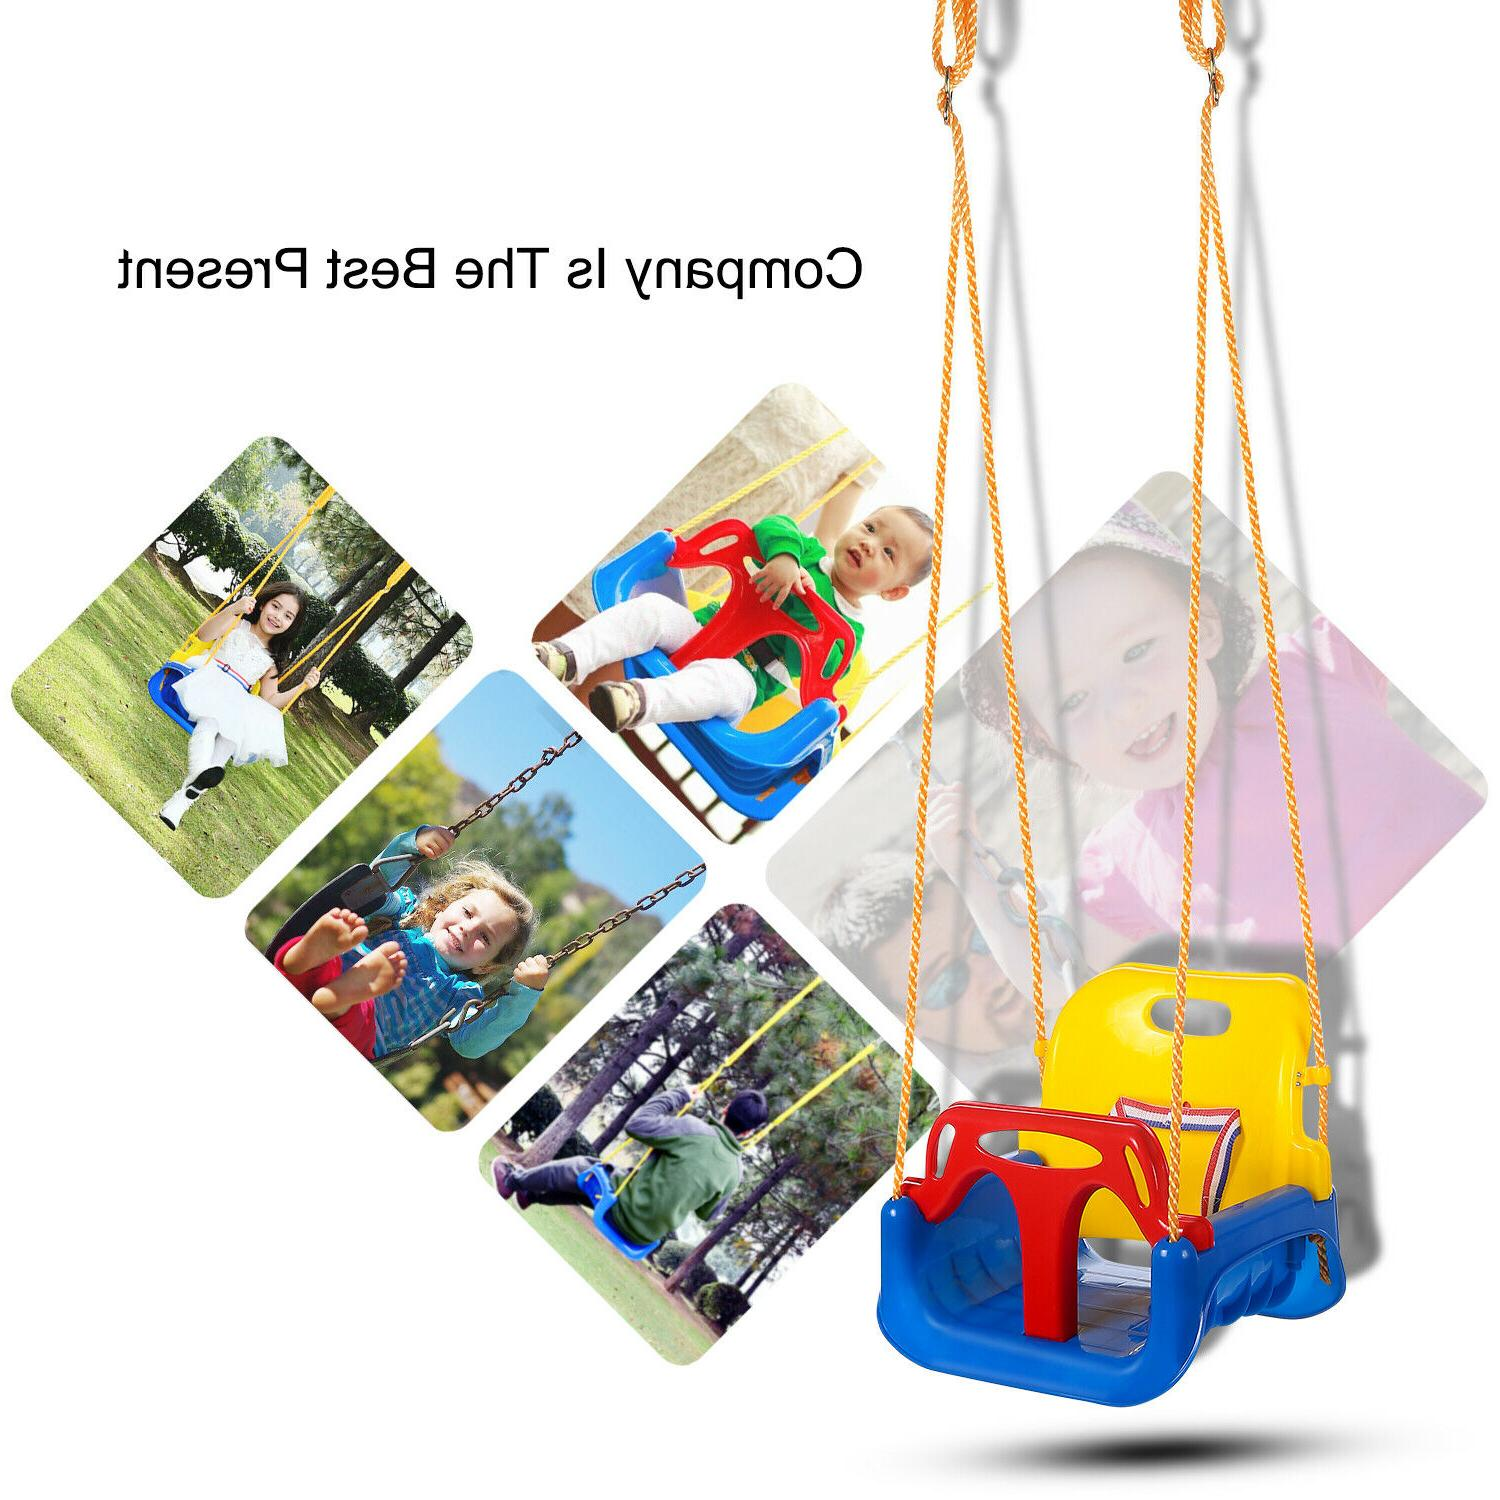 3-in-1 Set for Toddler Playground Outdoors Play